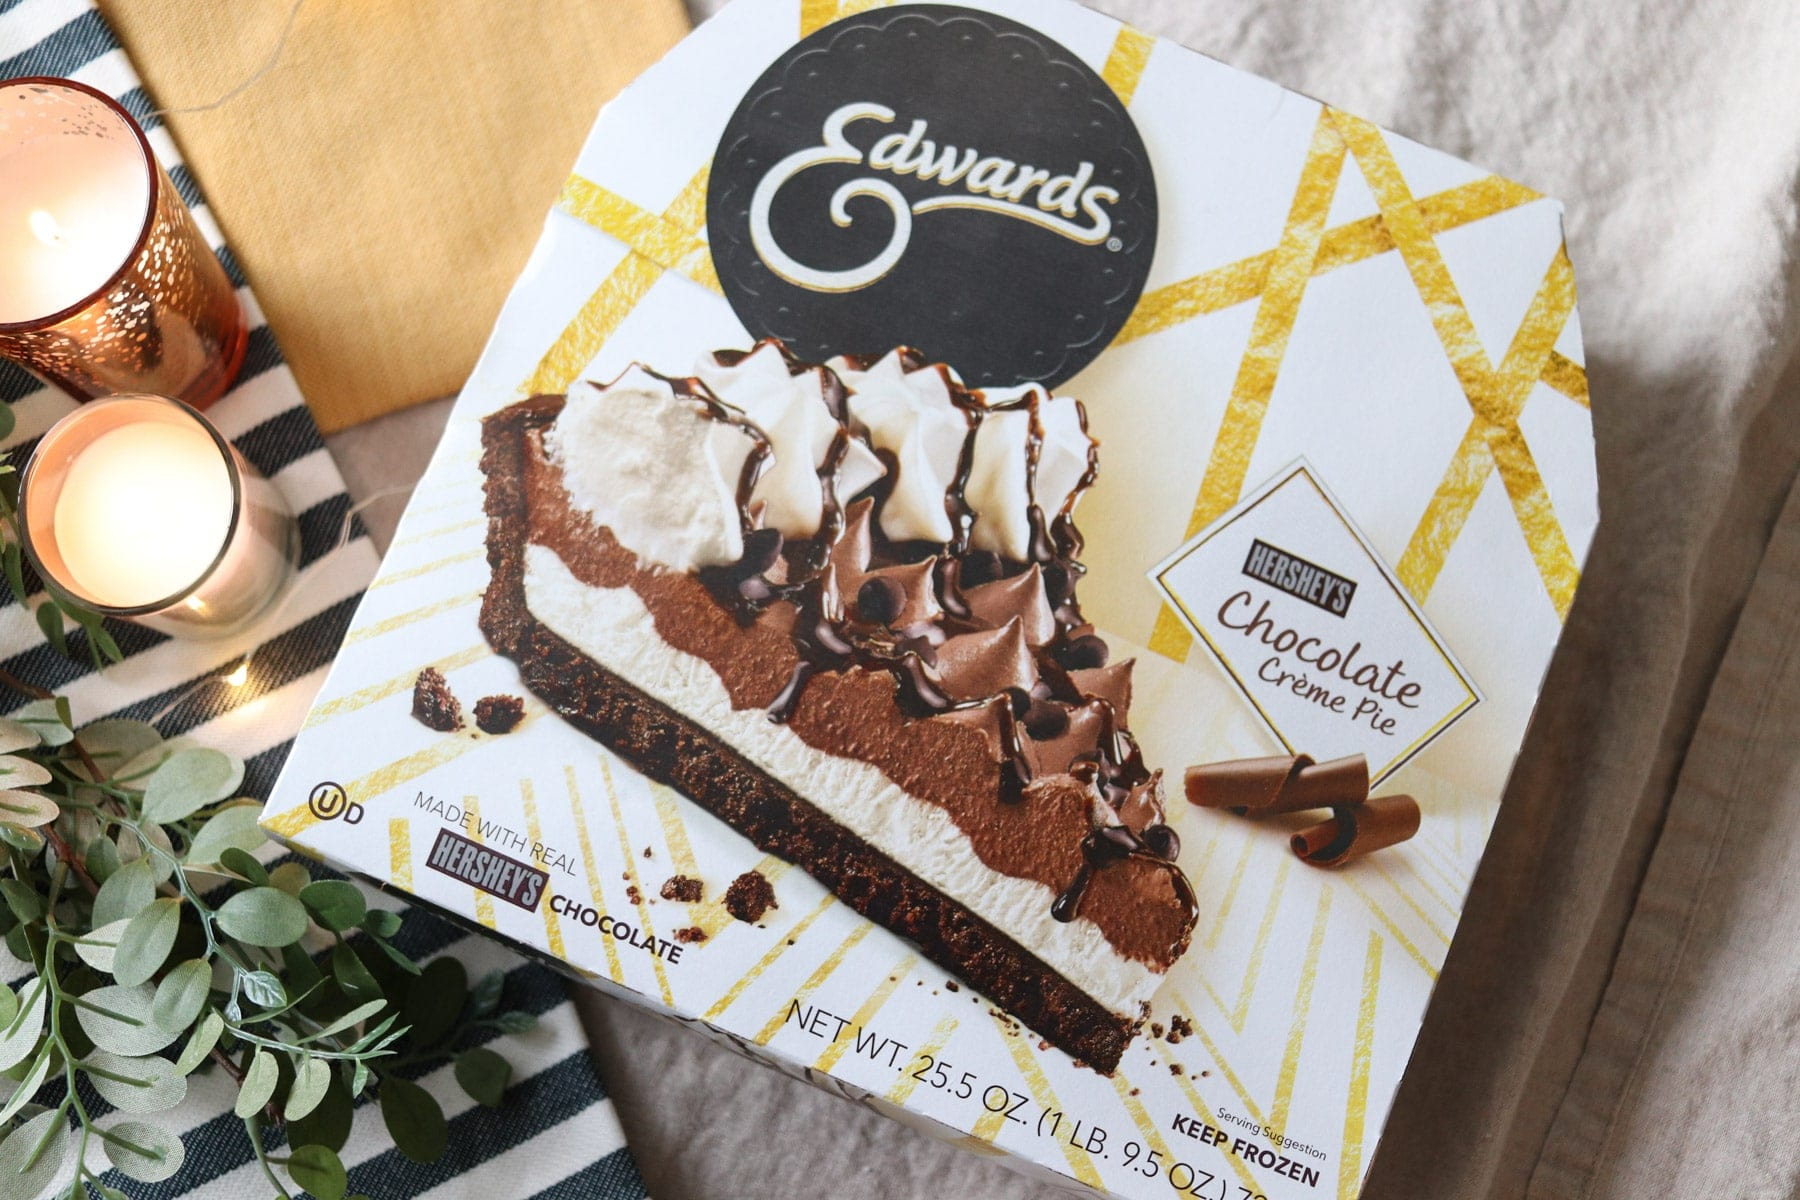 Edwards Hershey's Chocolate Crème Pie Packaging